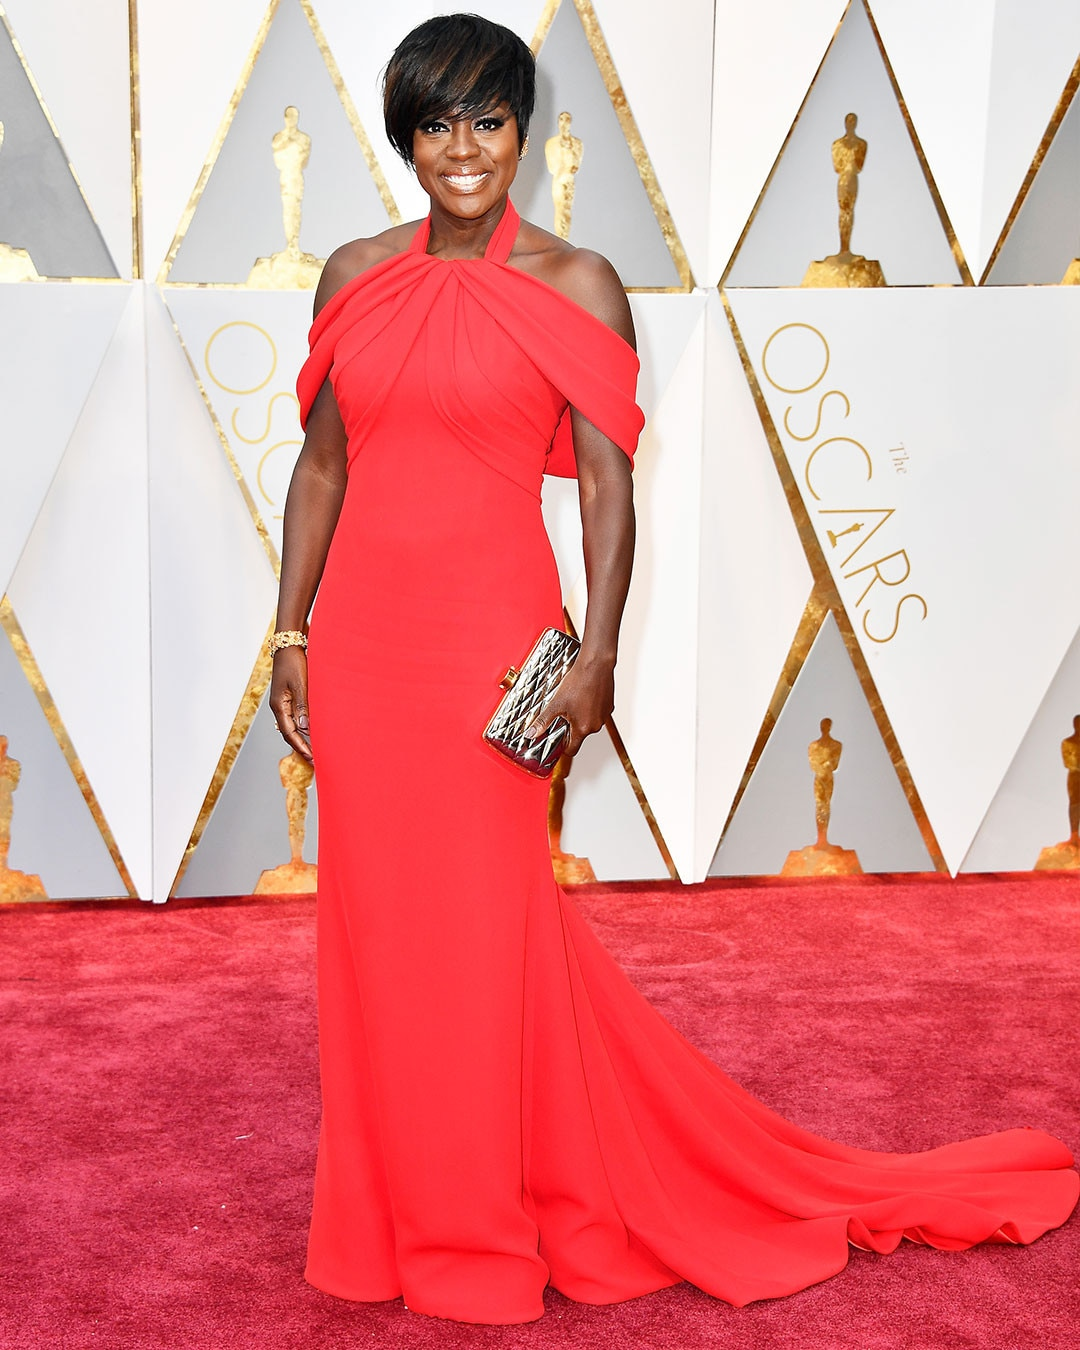 https://i2.wp.com/akns-images.eonline.com/eol_images/Entire_Site/2017126/rs_1080x1350-170226165527-1080.Viola-Davis-Oscars-Hollywood.kg.022617.jpg